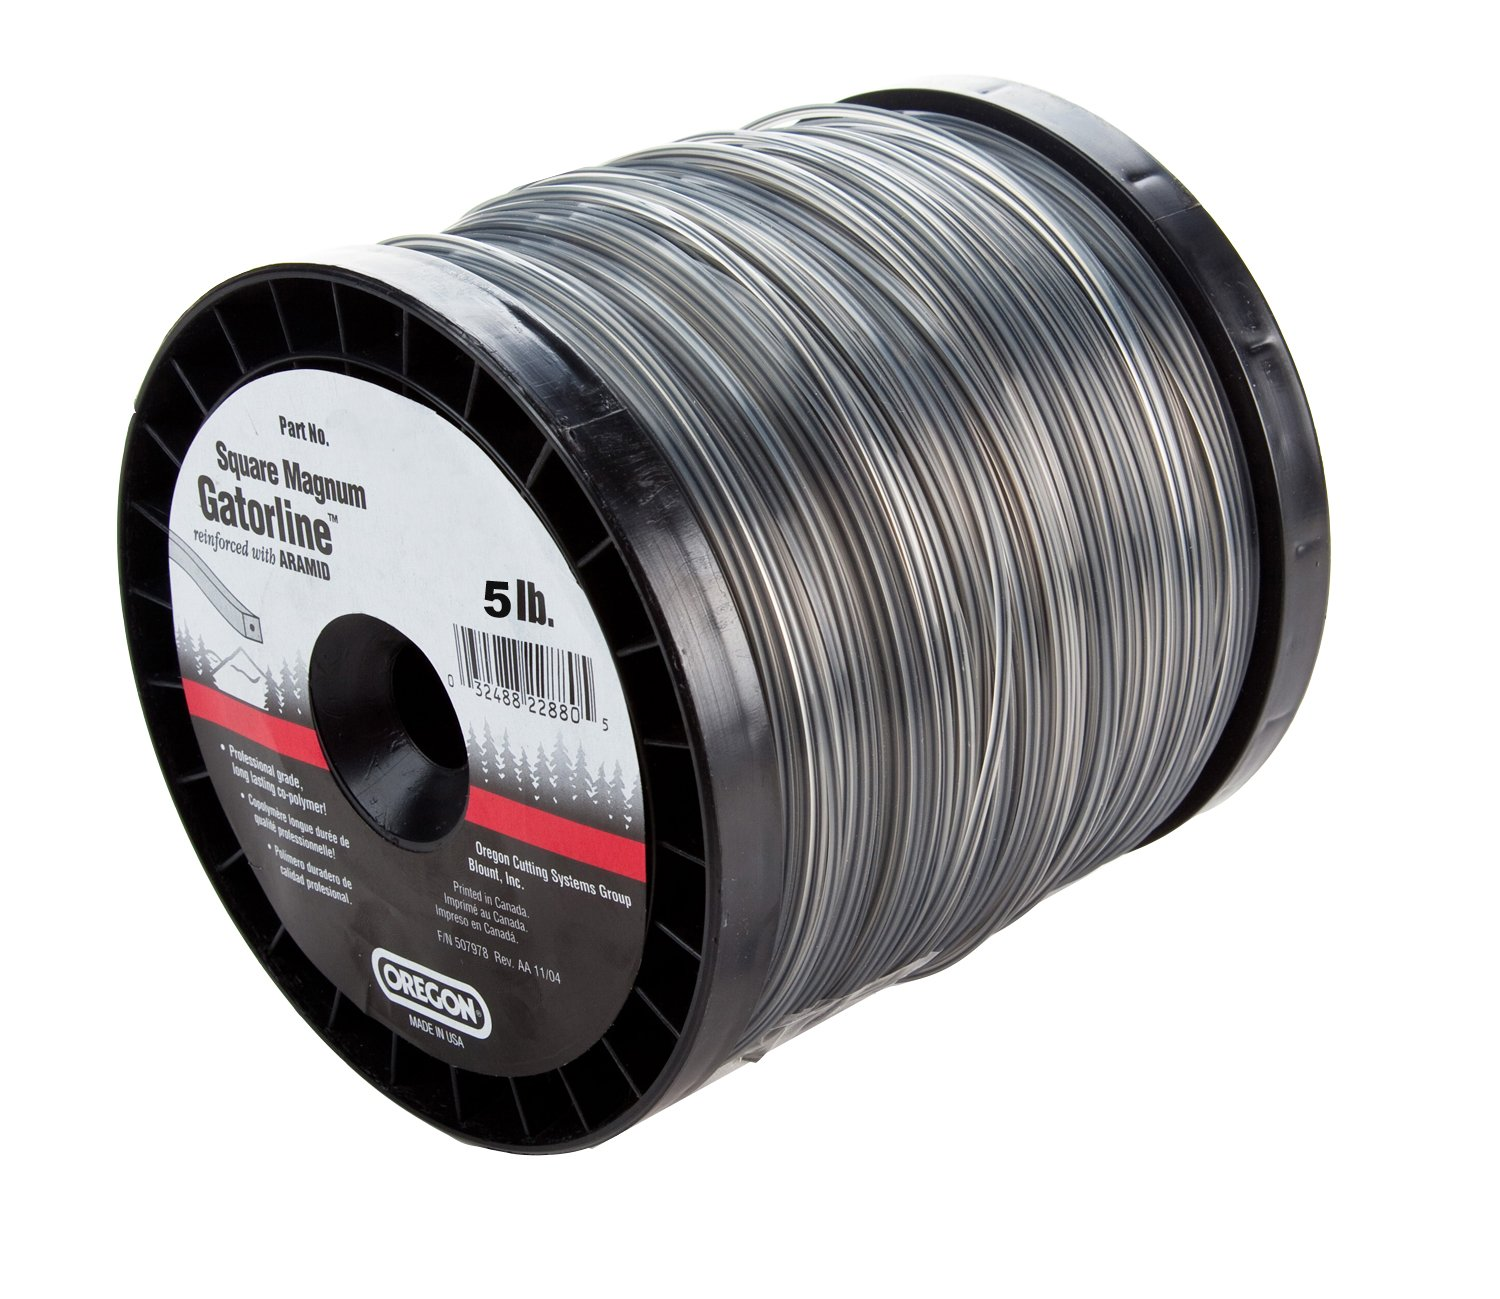 Oregon 22-095 Gatorline Heavy-Duty Professional Magnum 5-Pound Spool of .095-Inch-by-1134-Foot Square-Shaped String Trimmer Line by Oregon